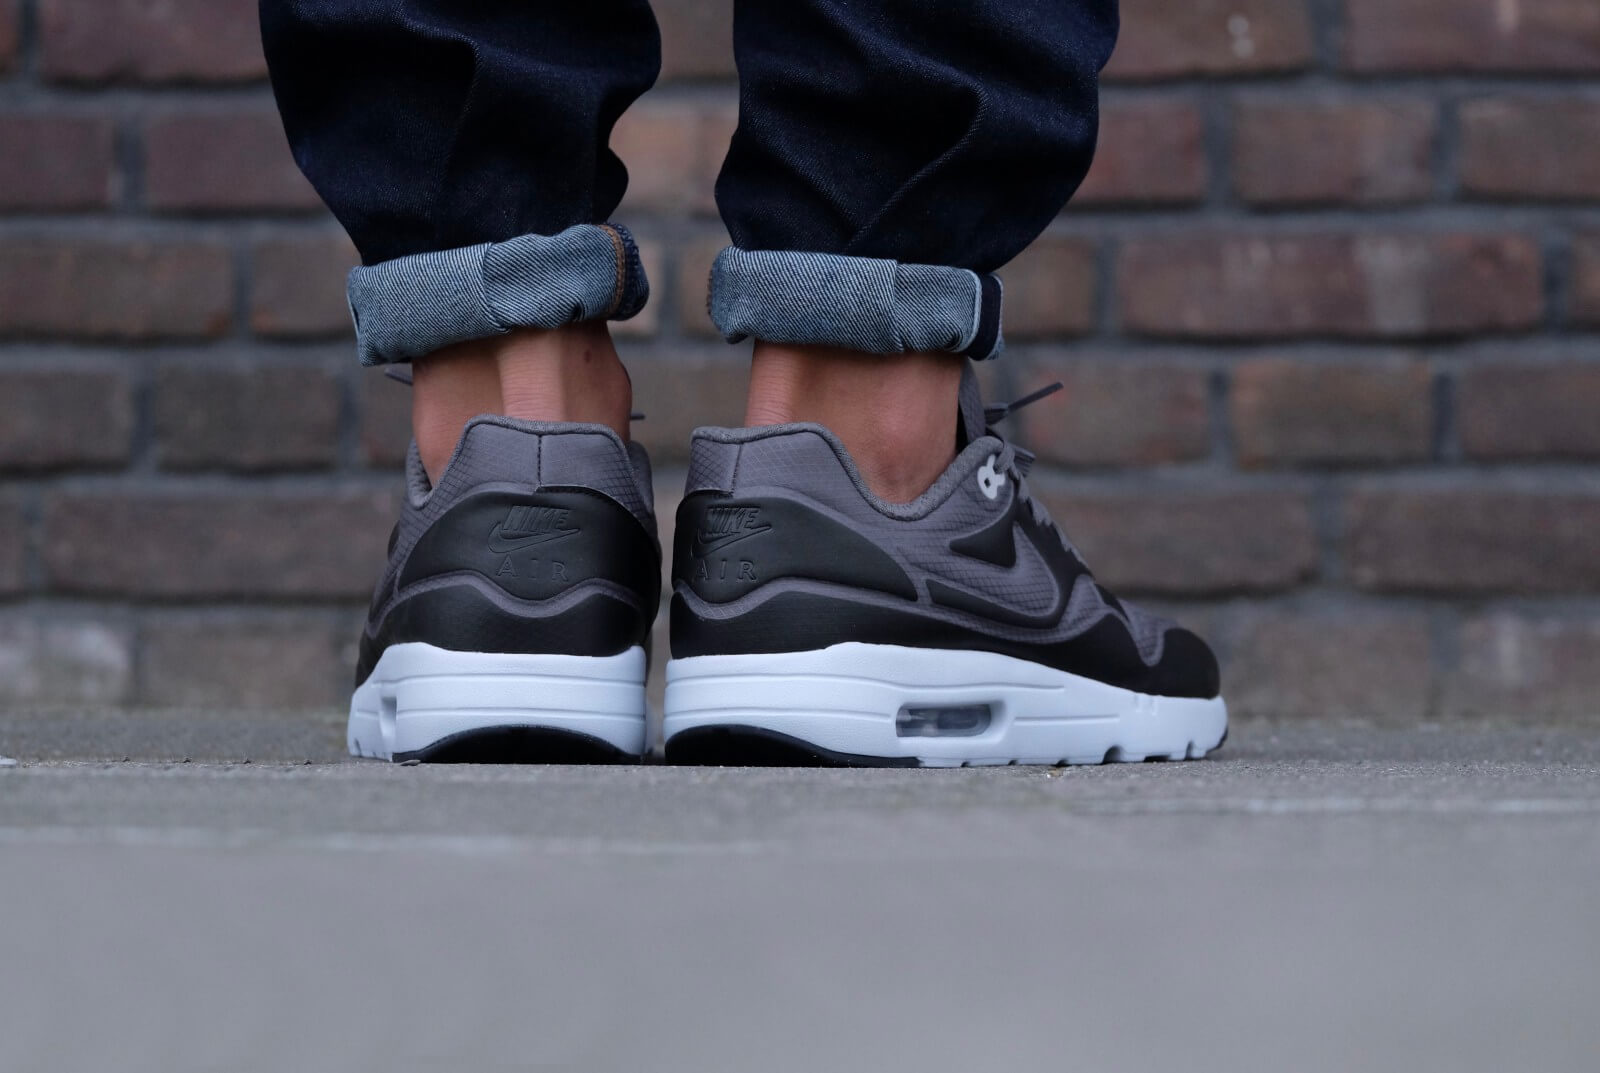 40172bb9b8ec77 ... Nike Air Max 1 Ultra SE Dark Grey Black ...